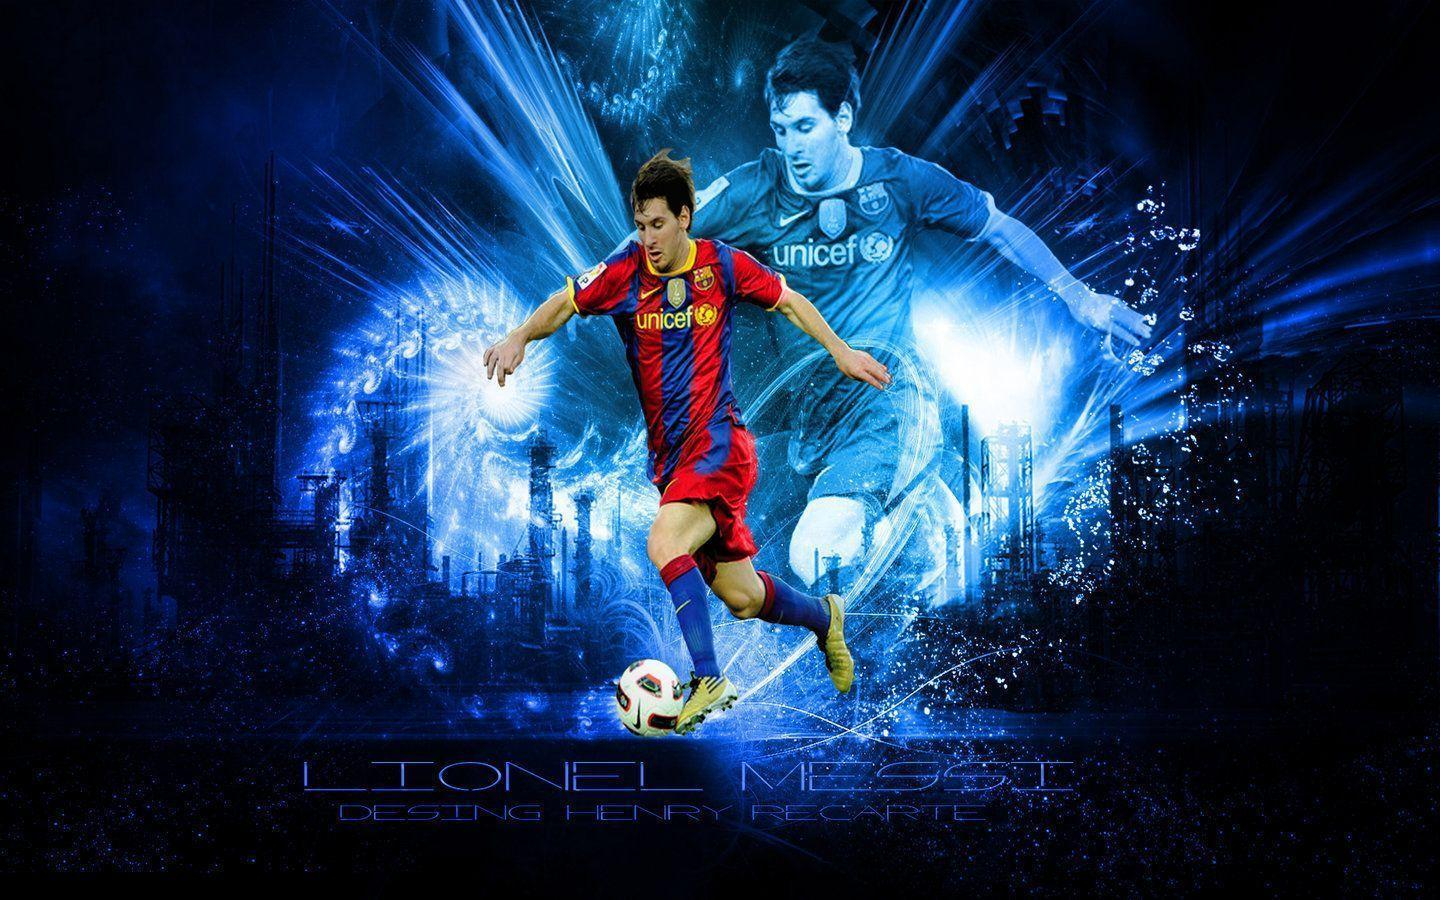 Lionel Messi Biography with full name and wallpapers | Footballwood